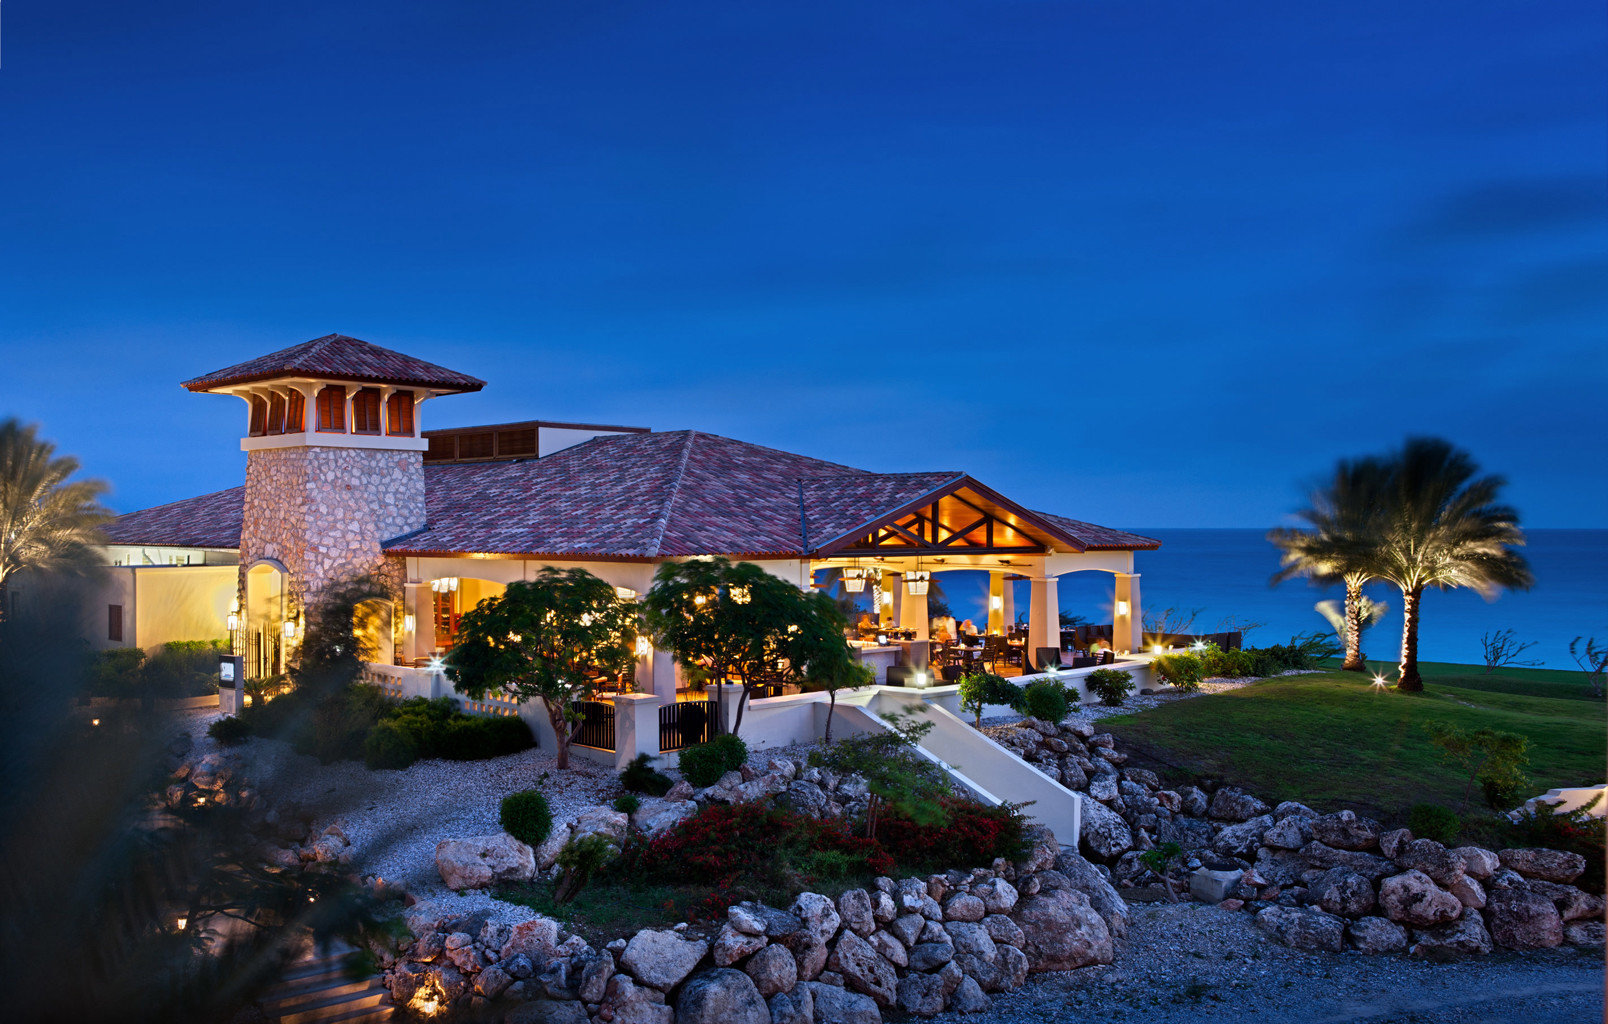 Exterior Family Luxury Resort Scenic views Waterfront house rock Town home residential area evening landscape Village mansion